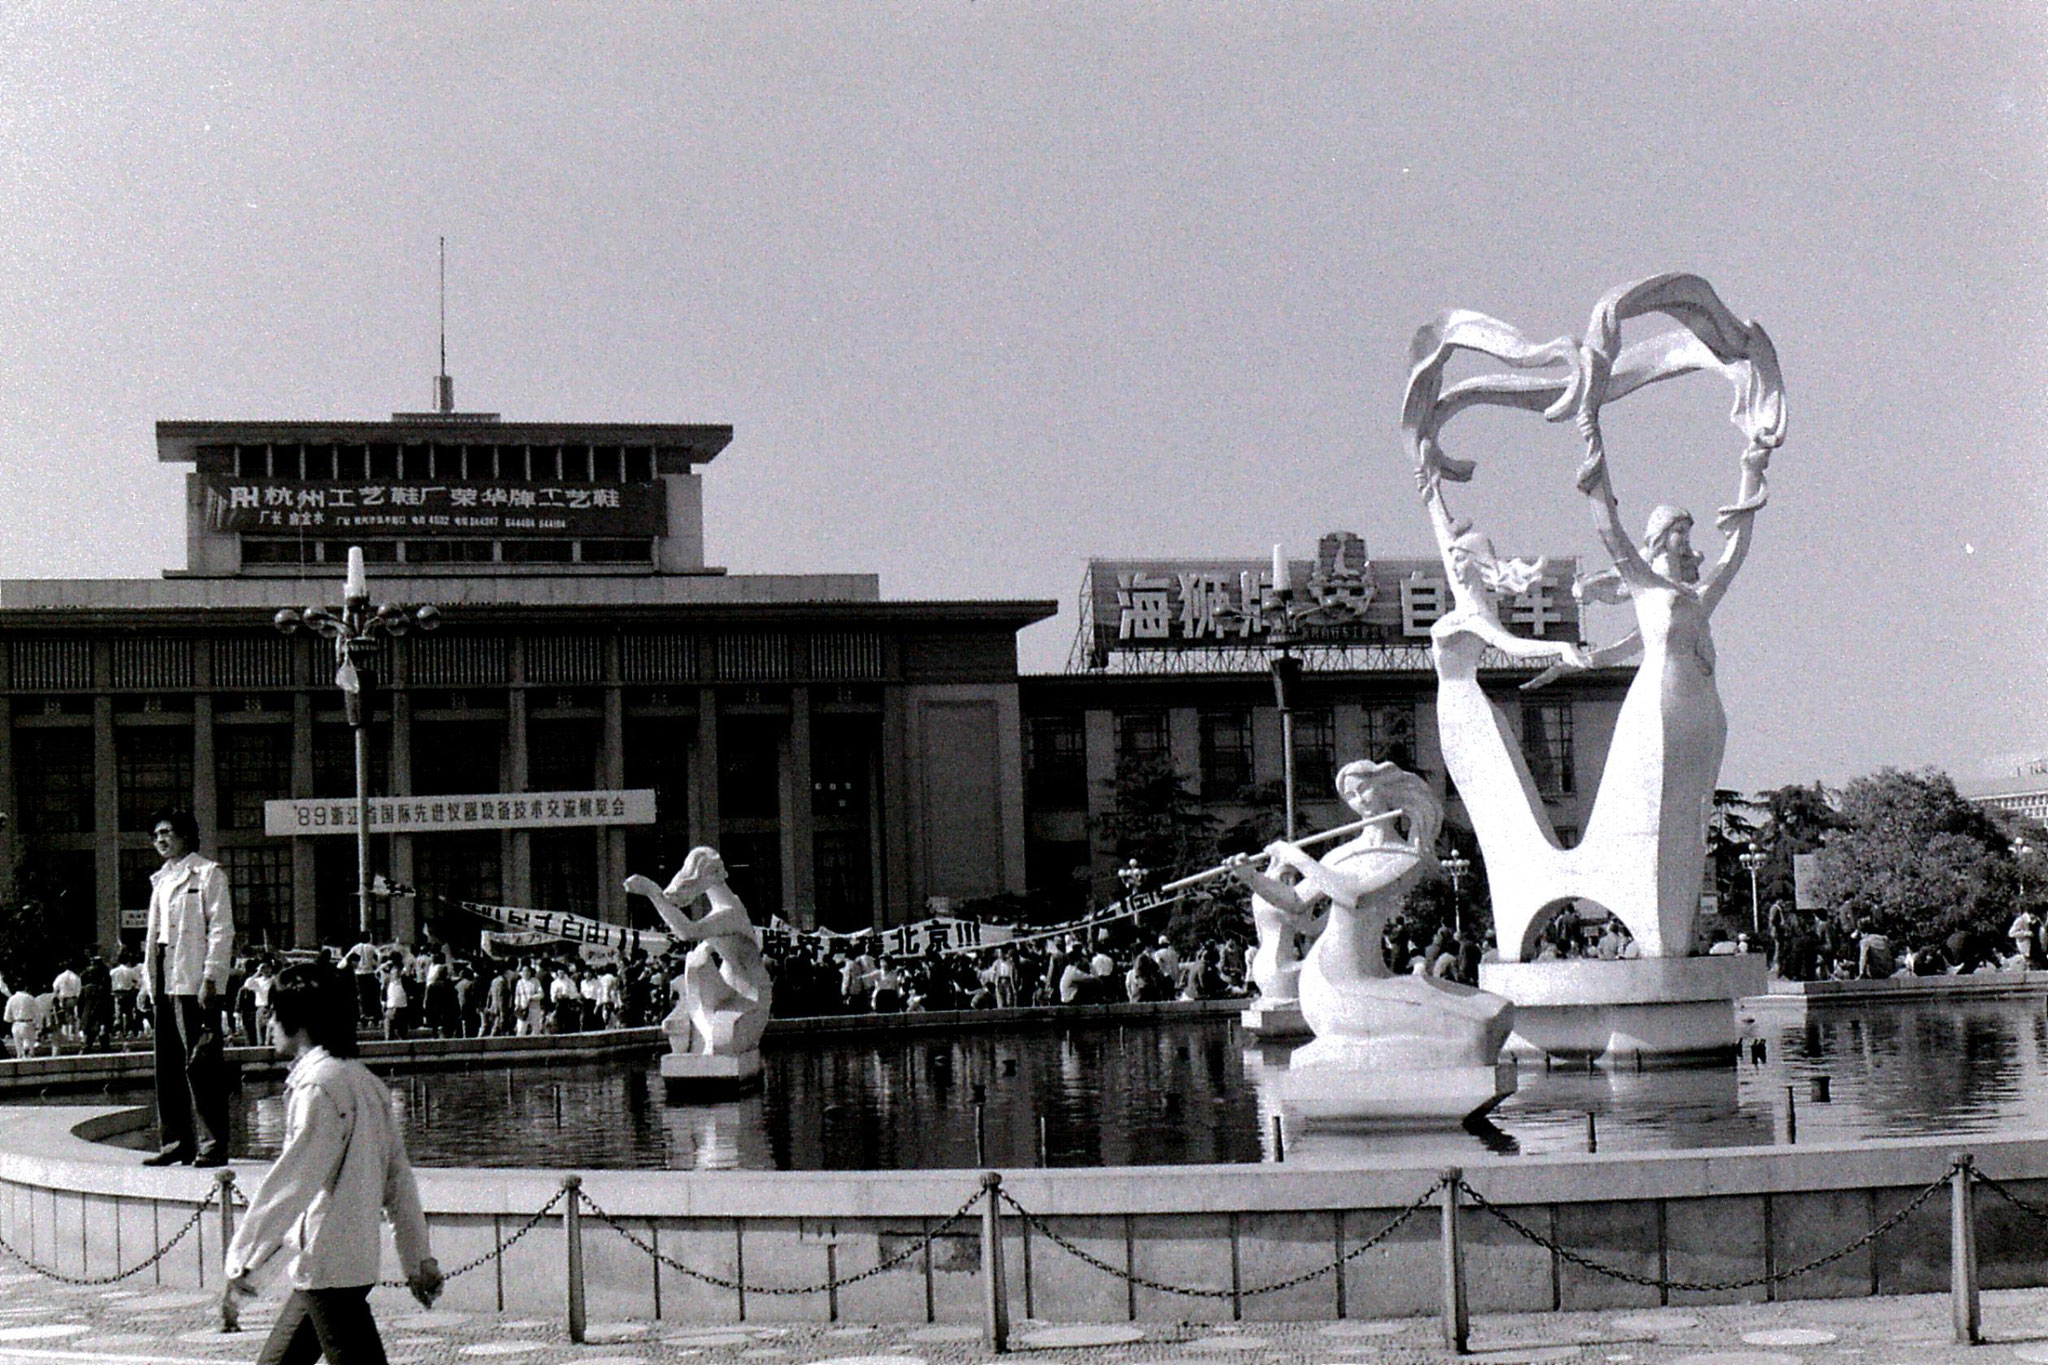 25/5/1989: 3: Hangzhou demopnstration outside exhibition centre